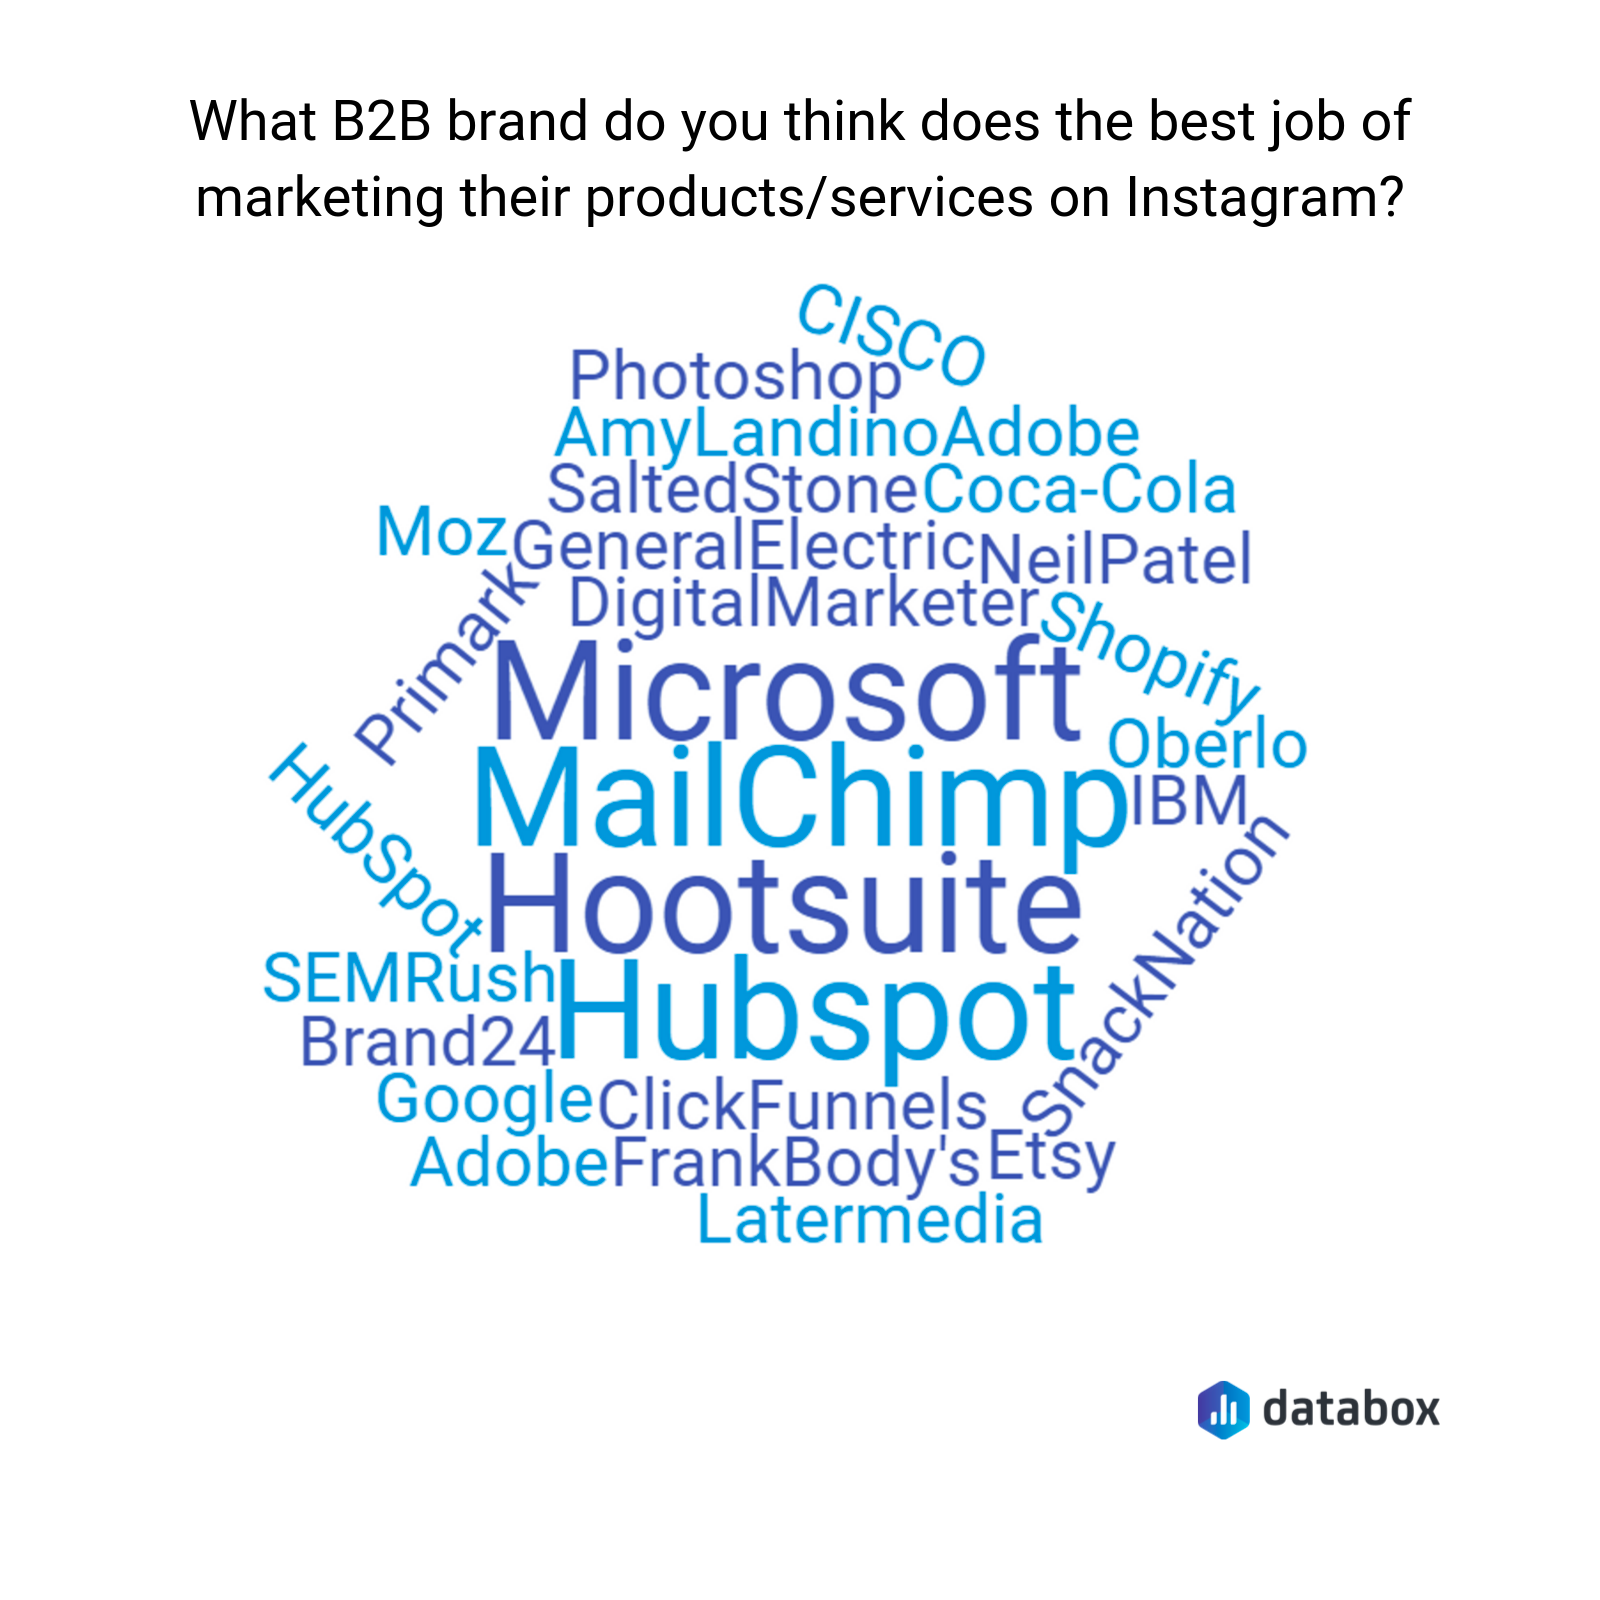 best b2b brands on instagram